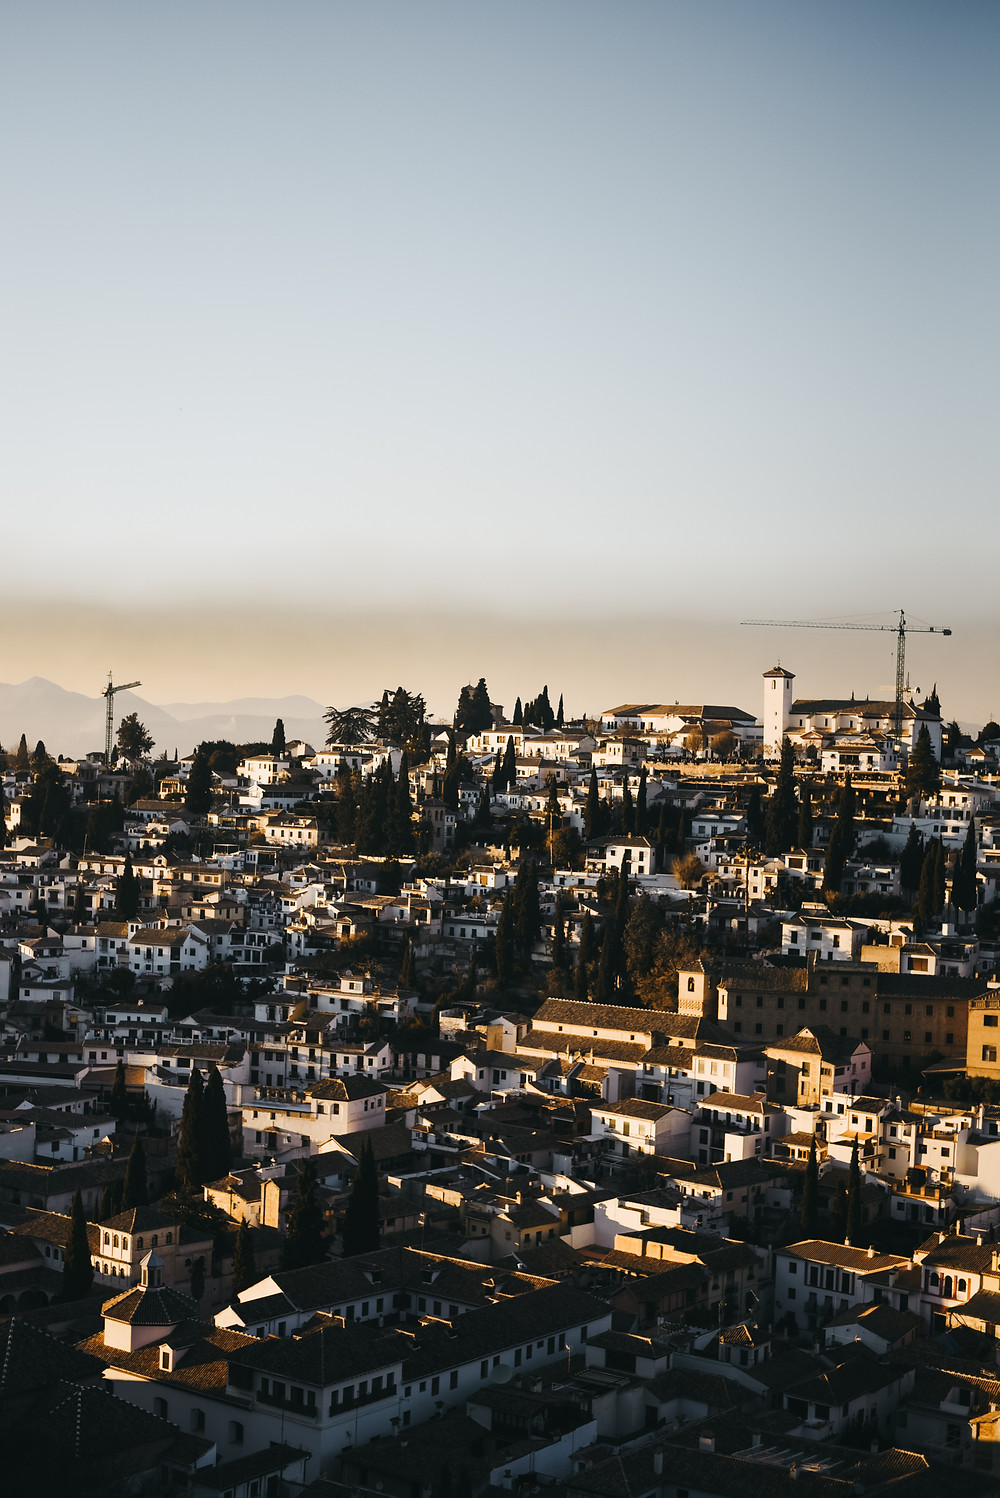 Granada at Sunset, Spain, view from Alhambra Palace